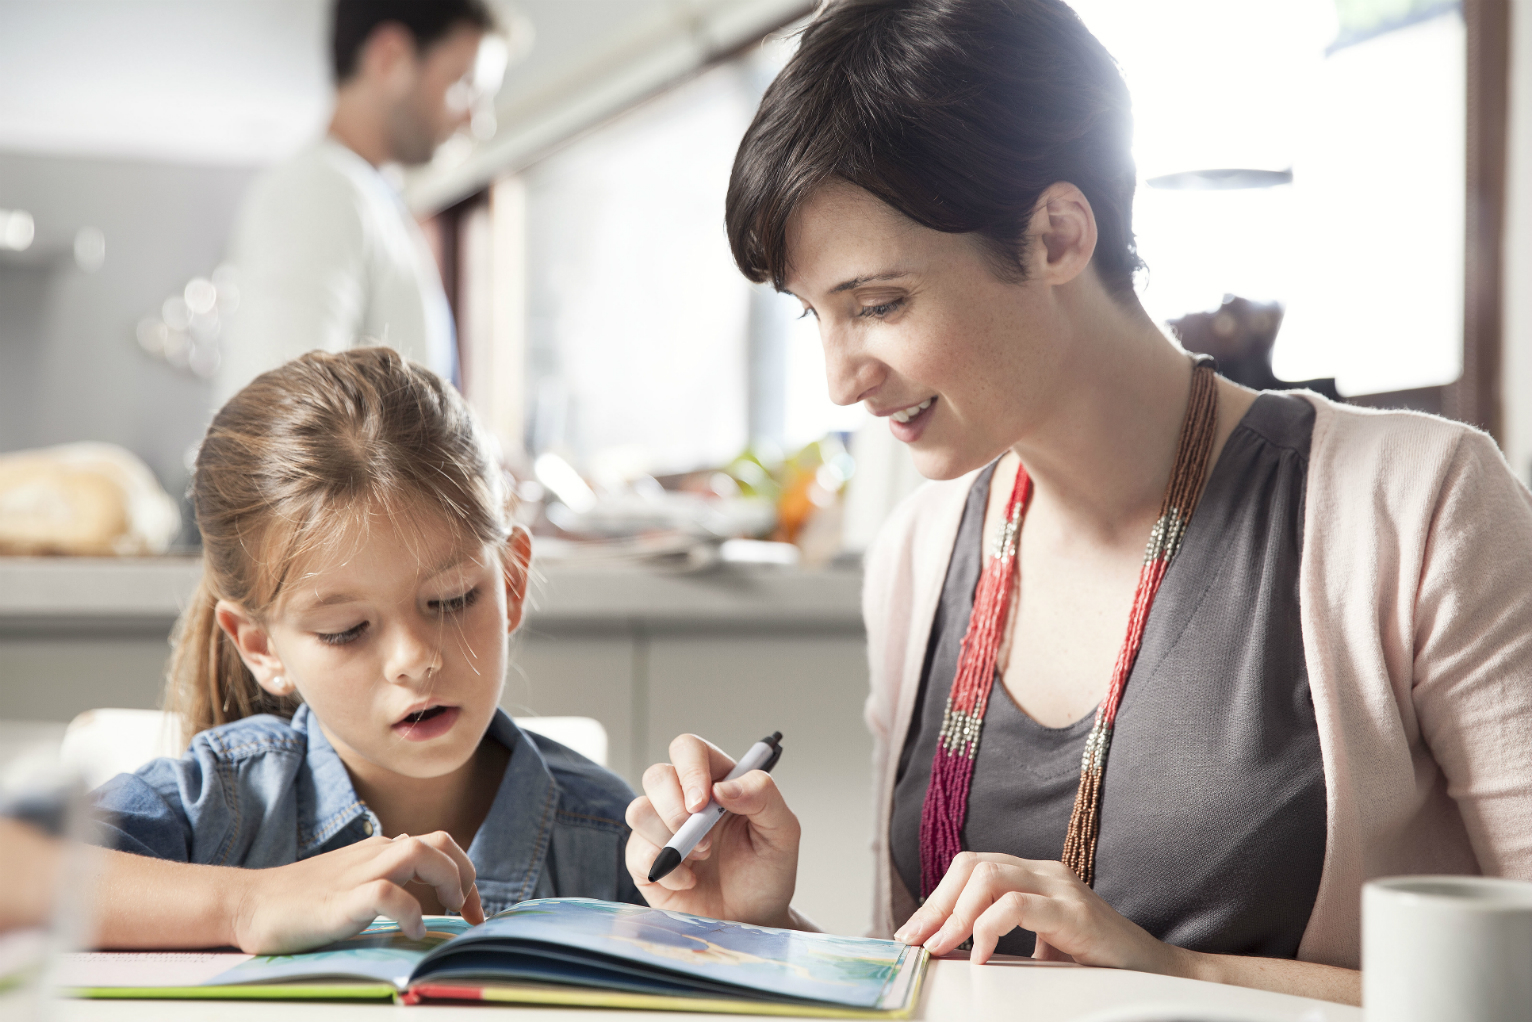 Hiring a Caregiver For Your Special Child